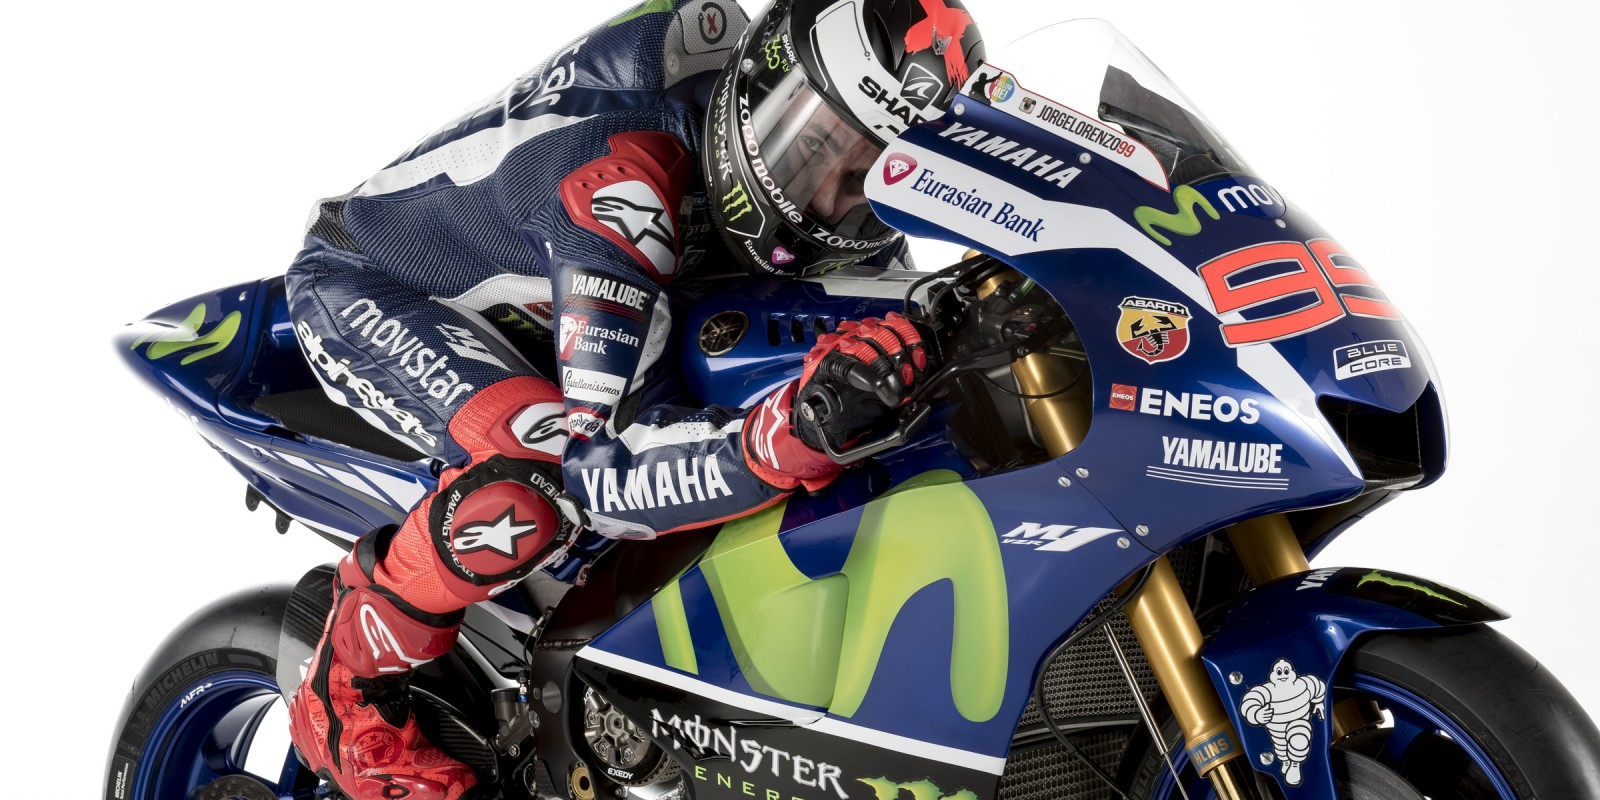 Images of MotoGP champion Jorge Lorenzoi in a pre-season shoot for Yamaha